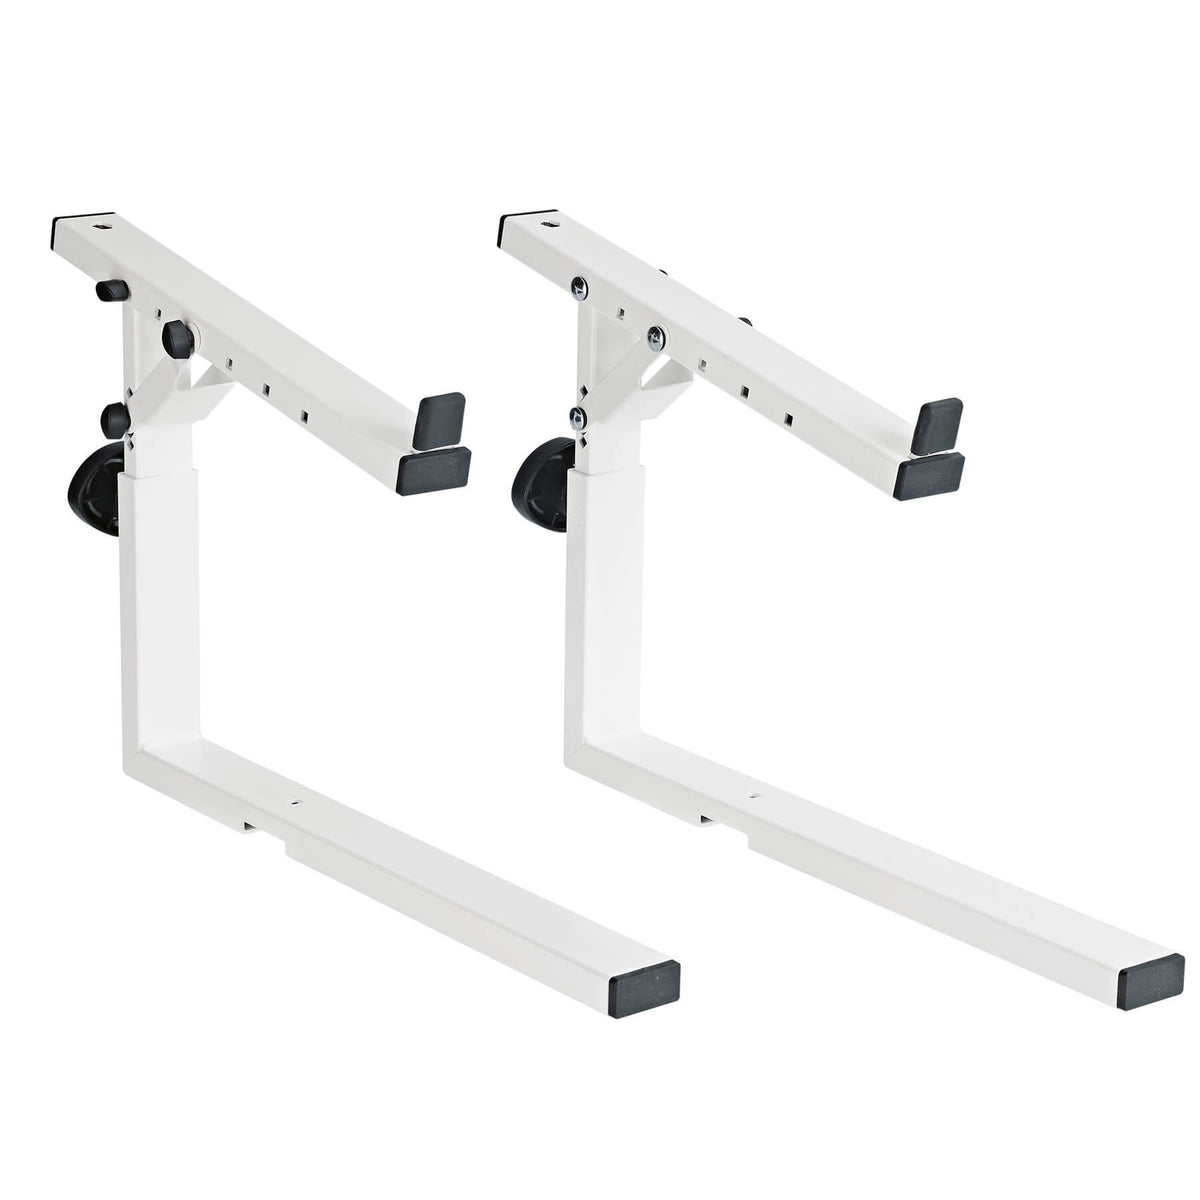 K&M 18811 Pure White 2nd Tier Stacker for Omega-E (18800), Omega (18810), and Omega Pro (18820) Keyboard Stands